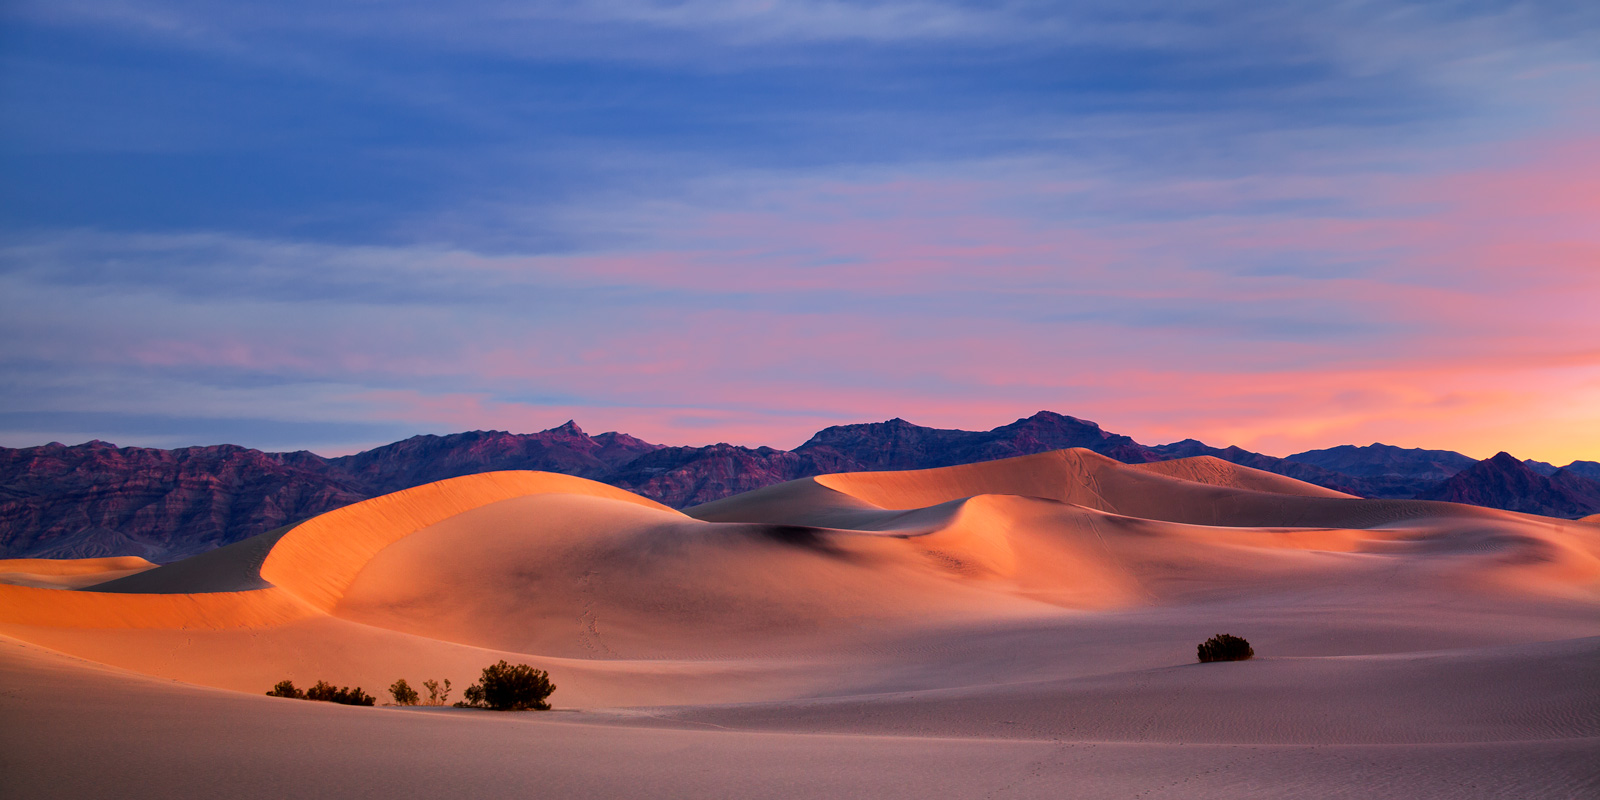 A Limited Edition, Fine Art photograph of Mesquite Dunes with beautiful warm light on the sand dunes at sunrise in Death Valley...